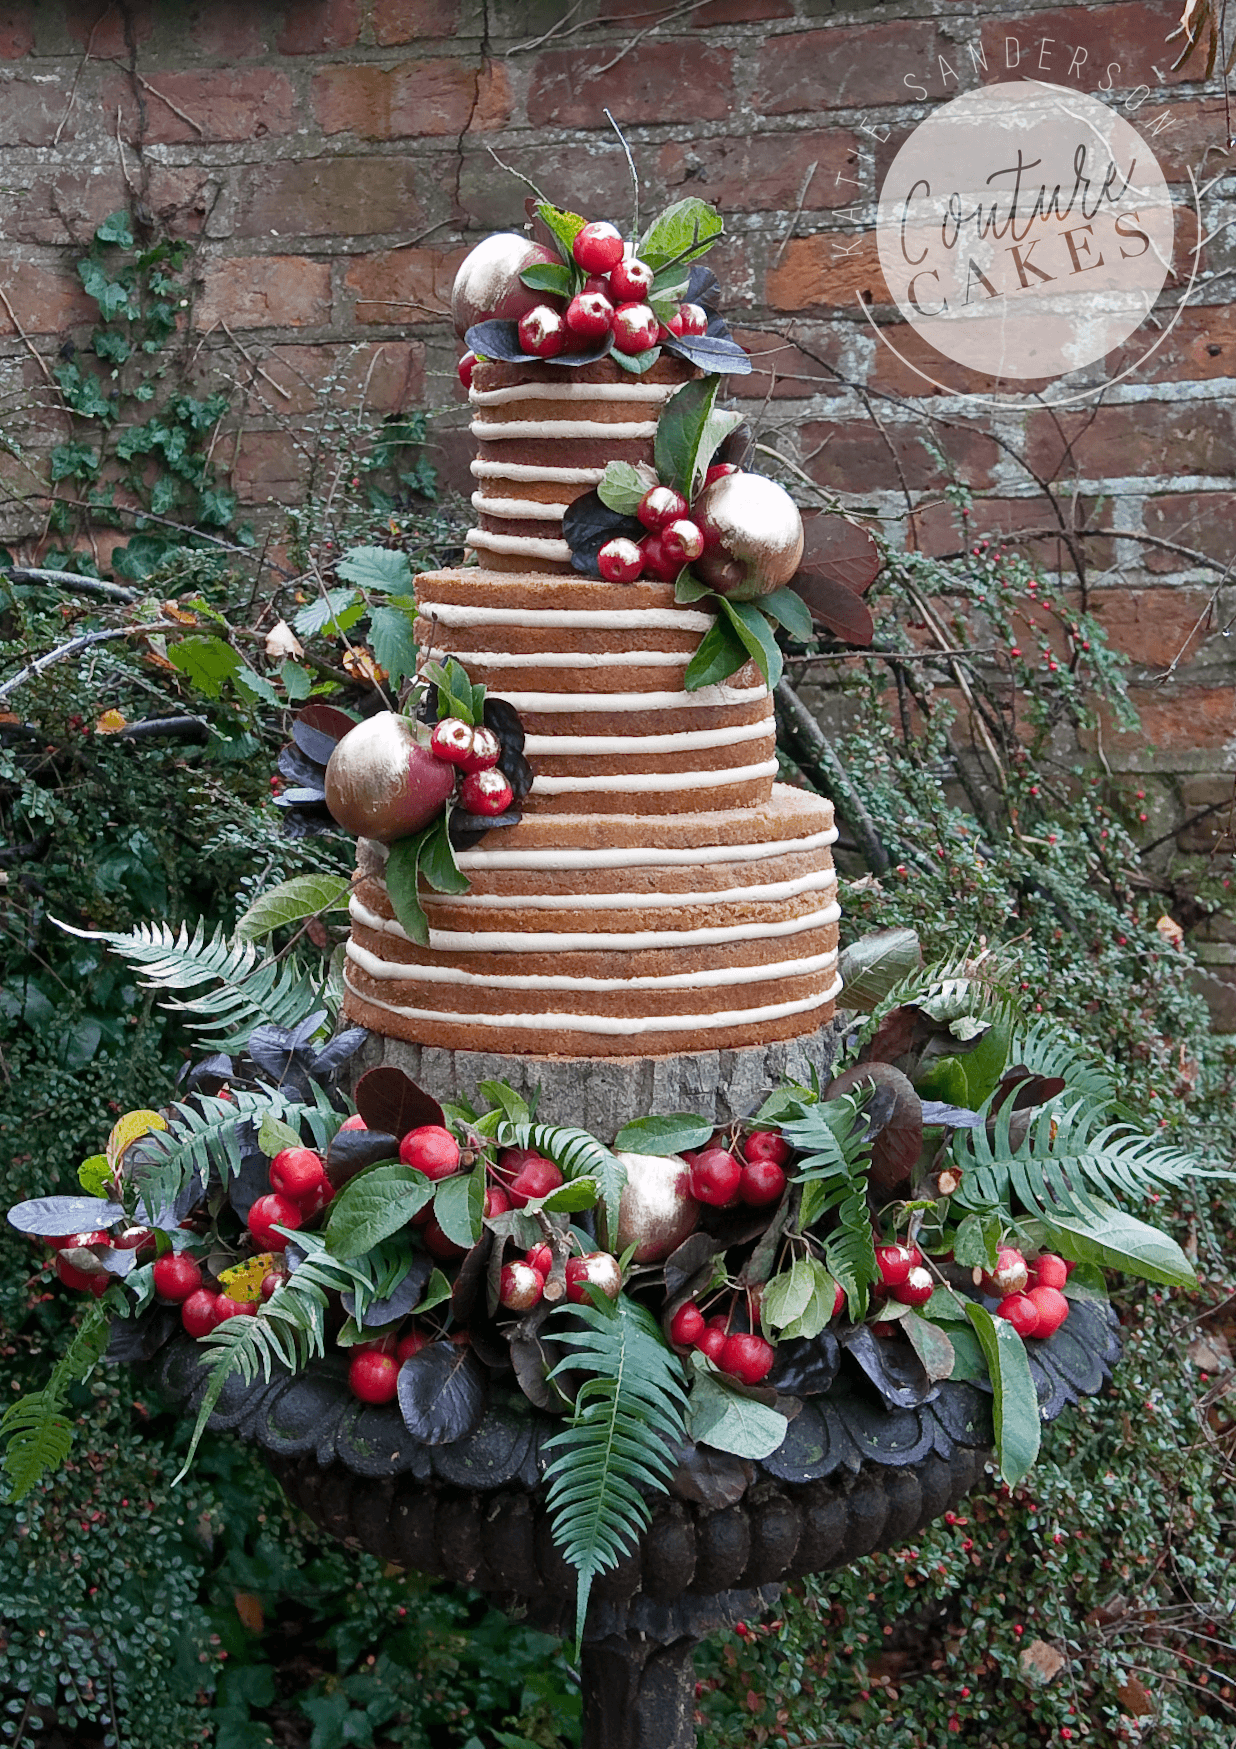 Naked Cake serves 110 portions, Price £335 plus £90 bed of fruit & foliage